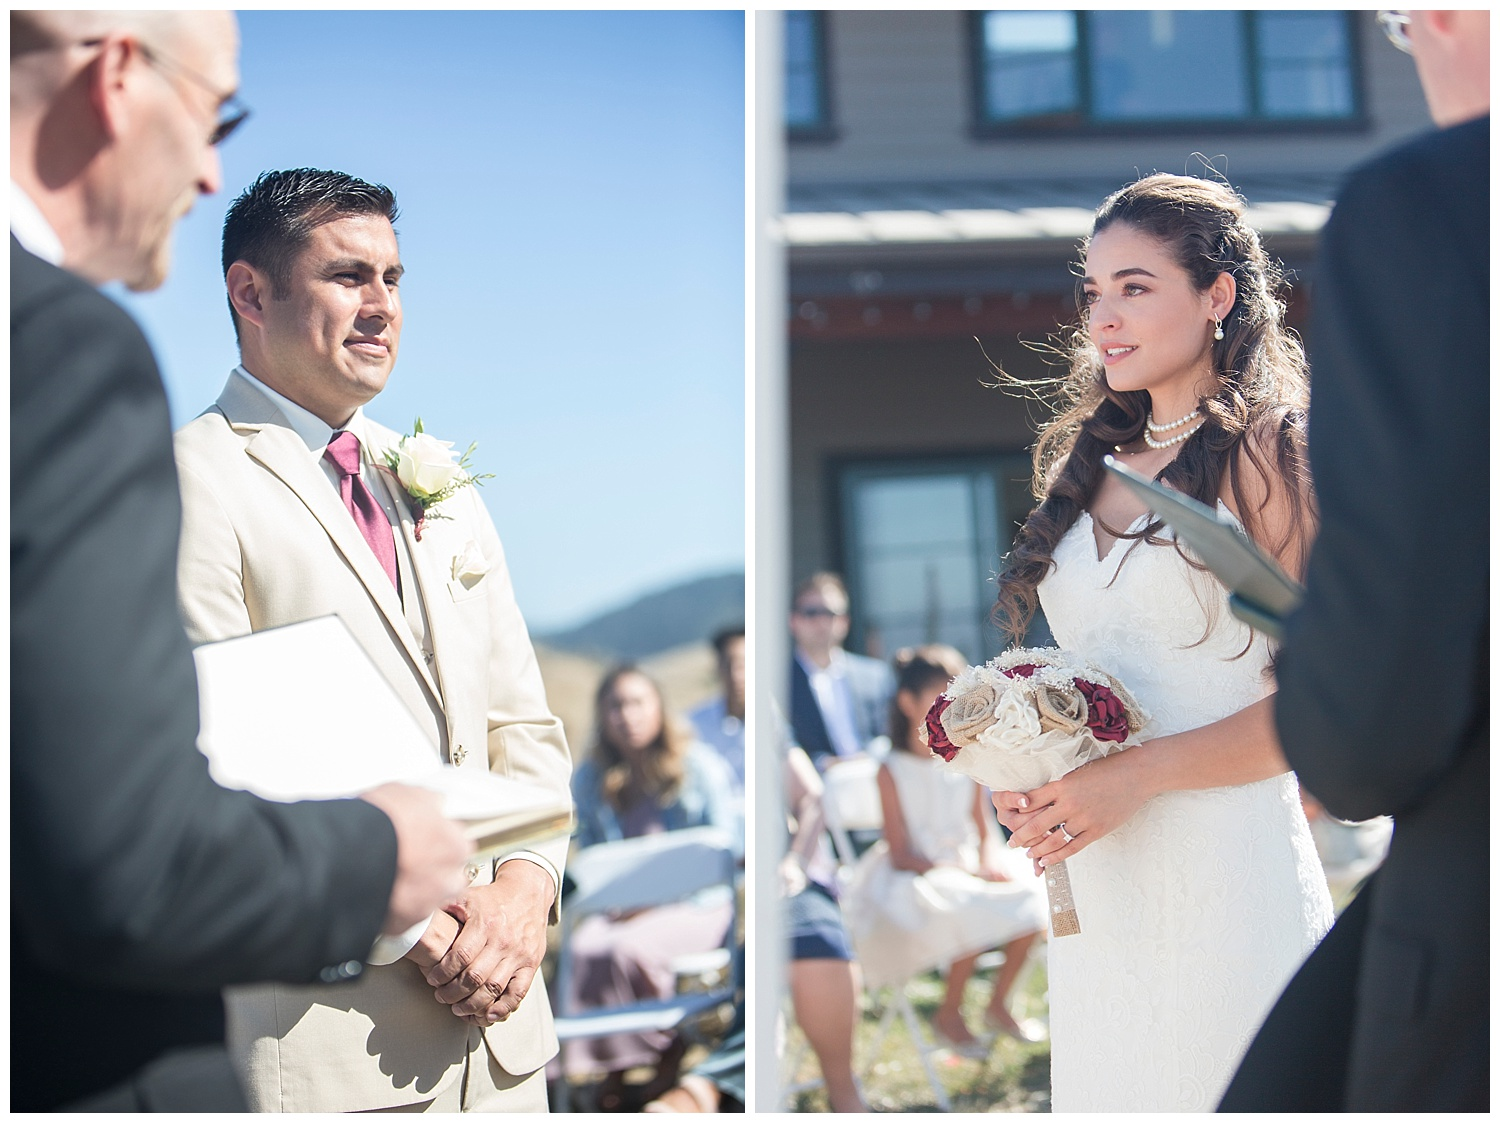 a_Ryan+Allyson_Renoda Campbell Photography_San Luis Obispo Wedding Photographer-0919.jpg